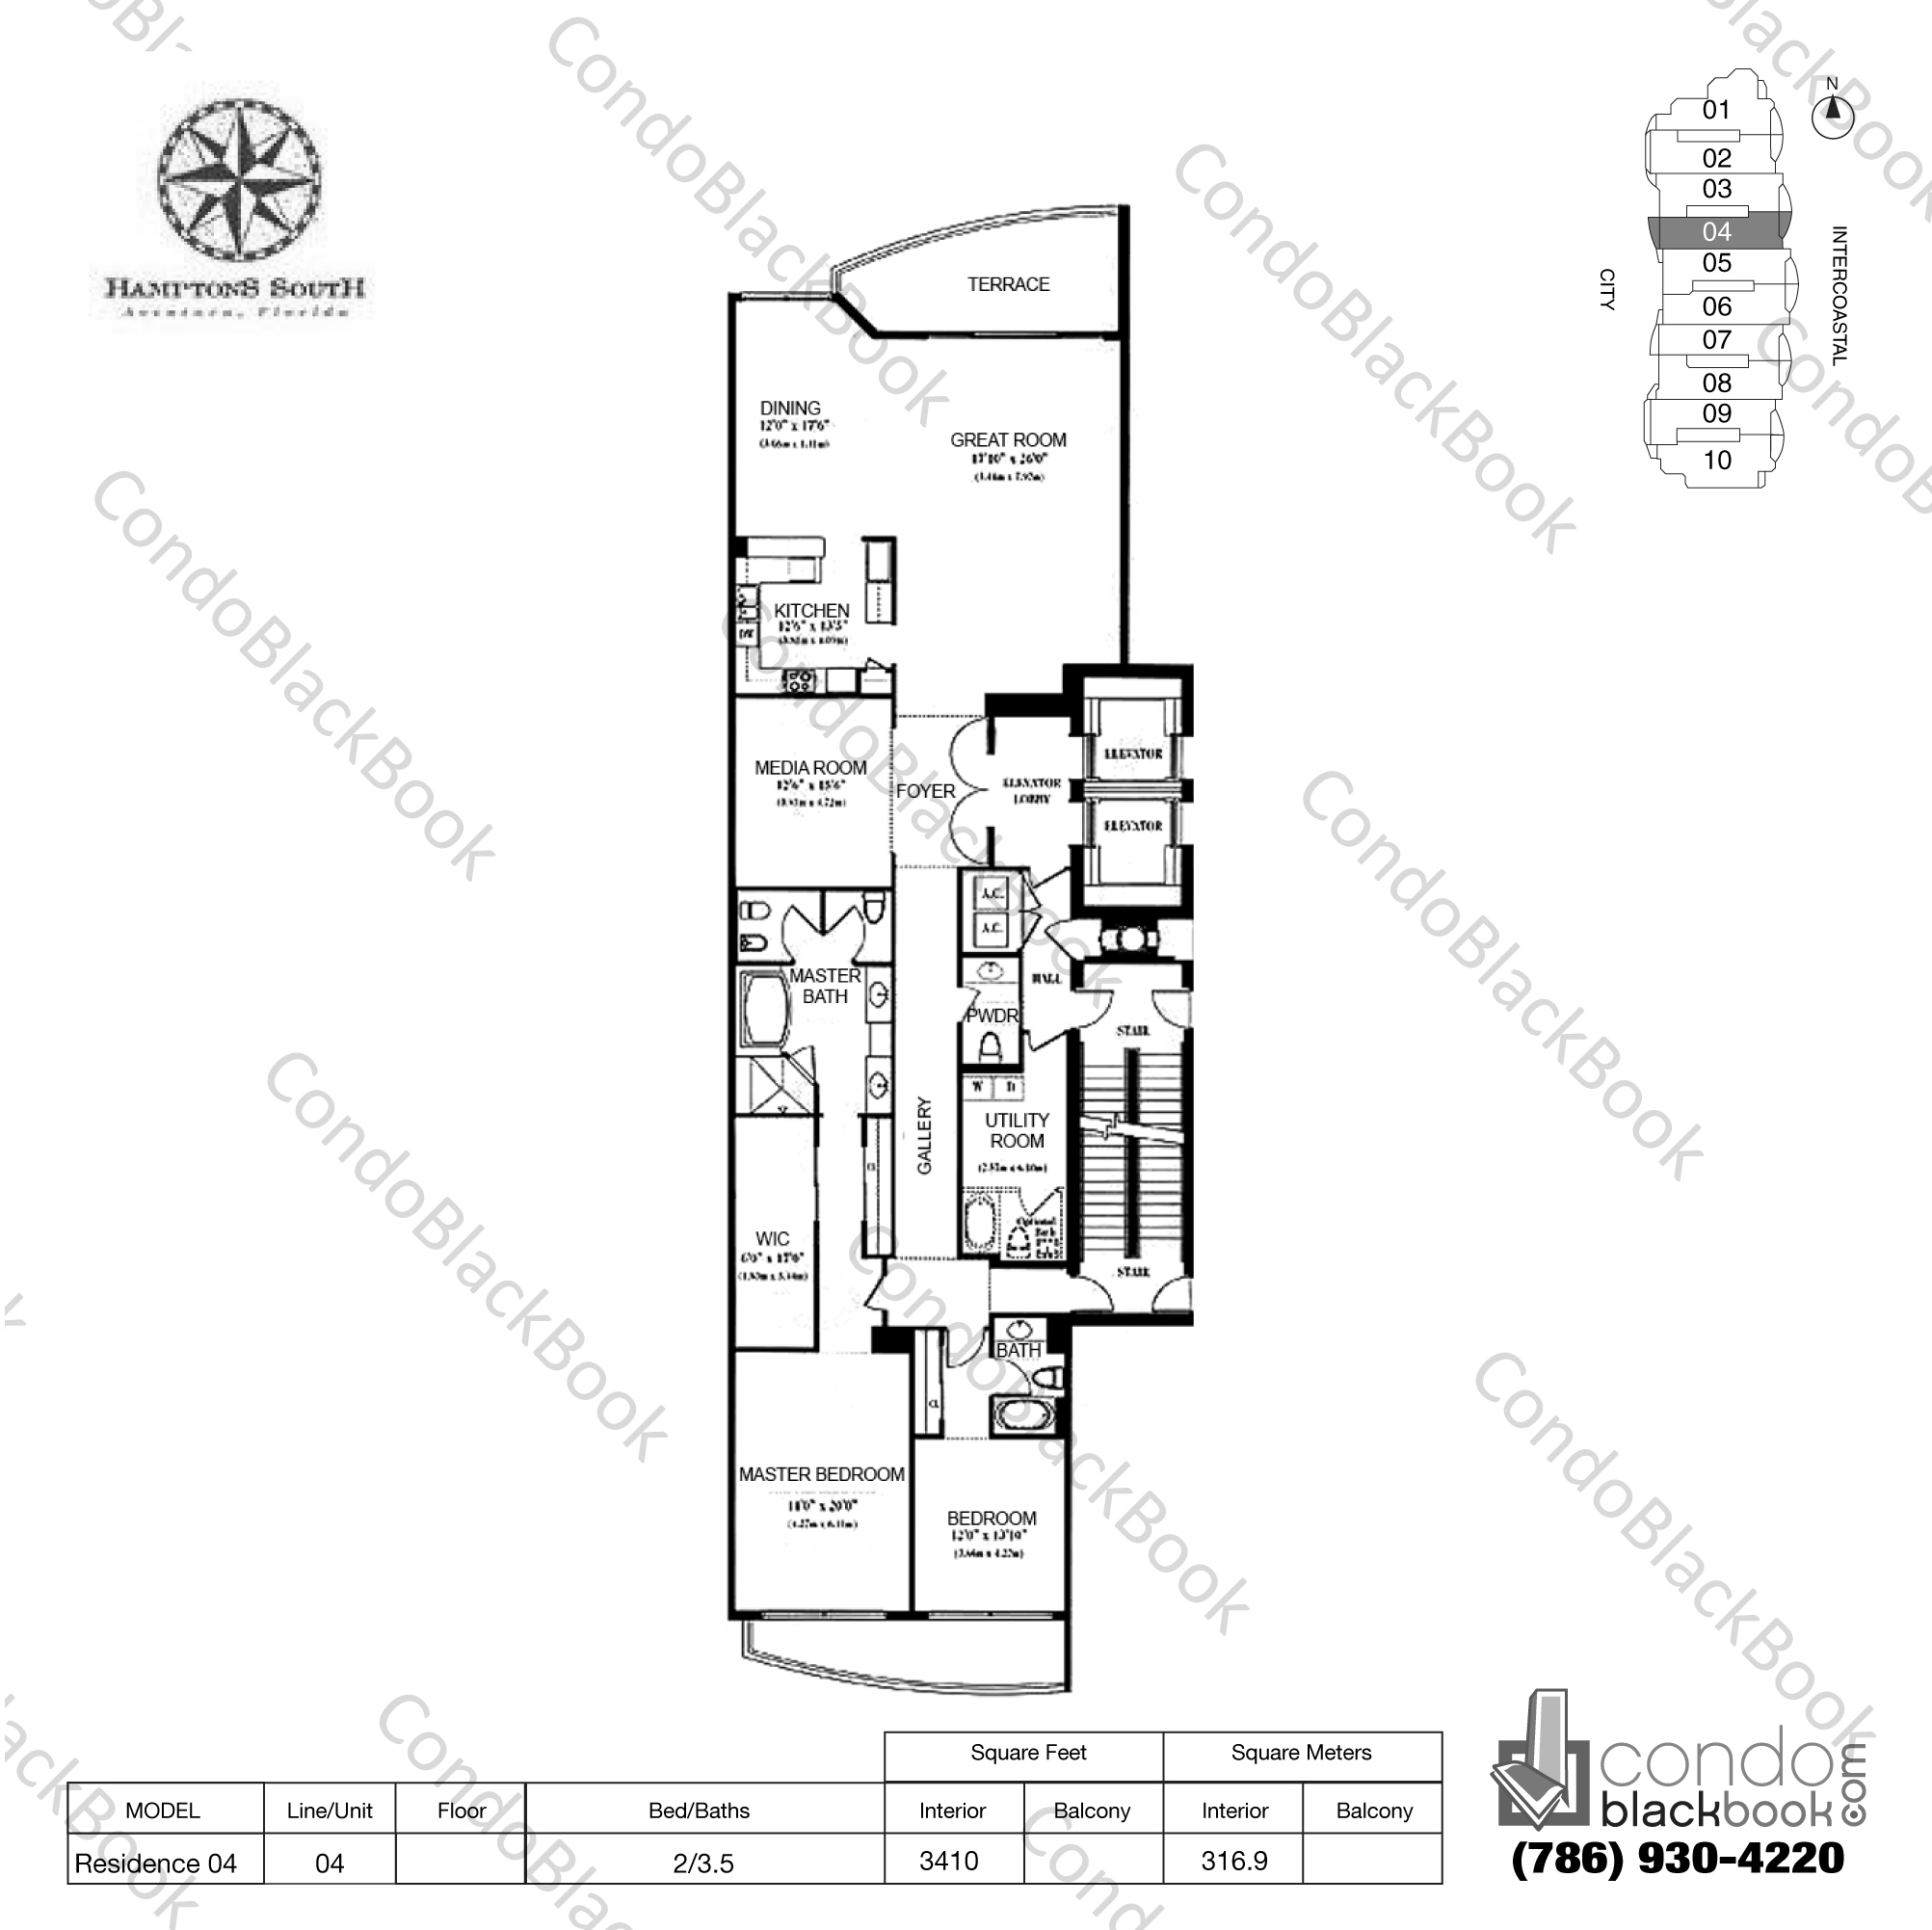 Floor plan for Hamptons South Aventura, model Residence 04, line 04, 2/3.5 bedrooms, 3410 sq ft